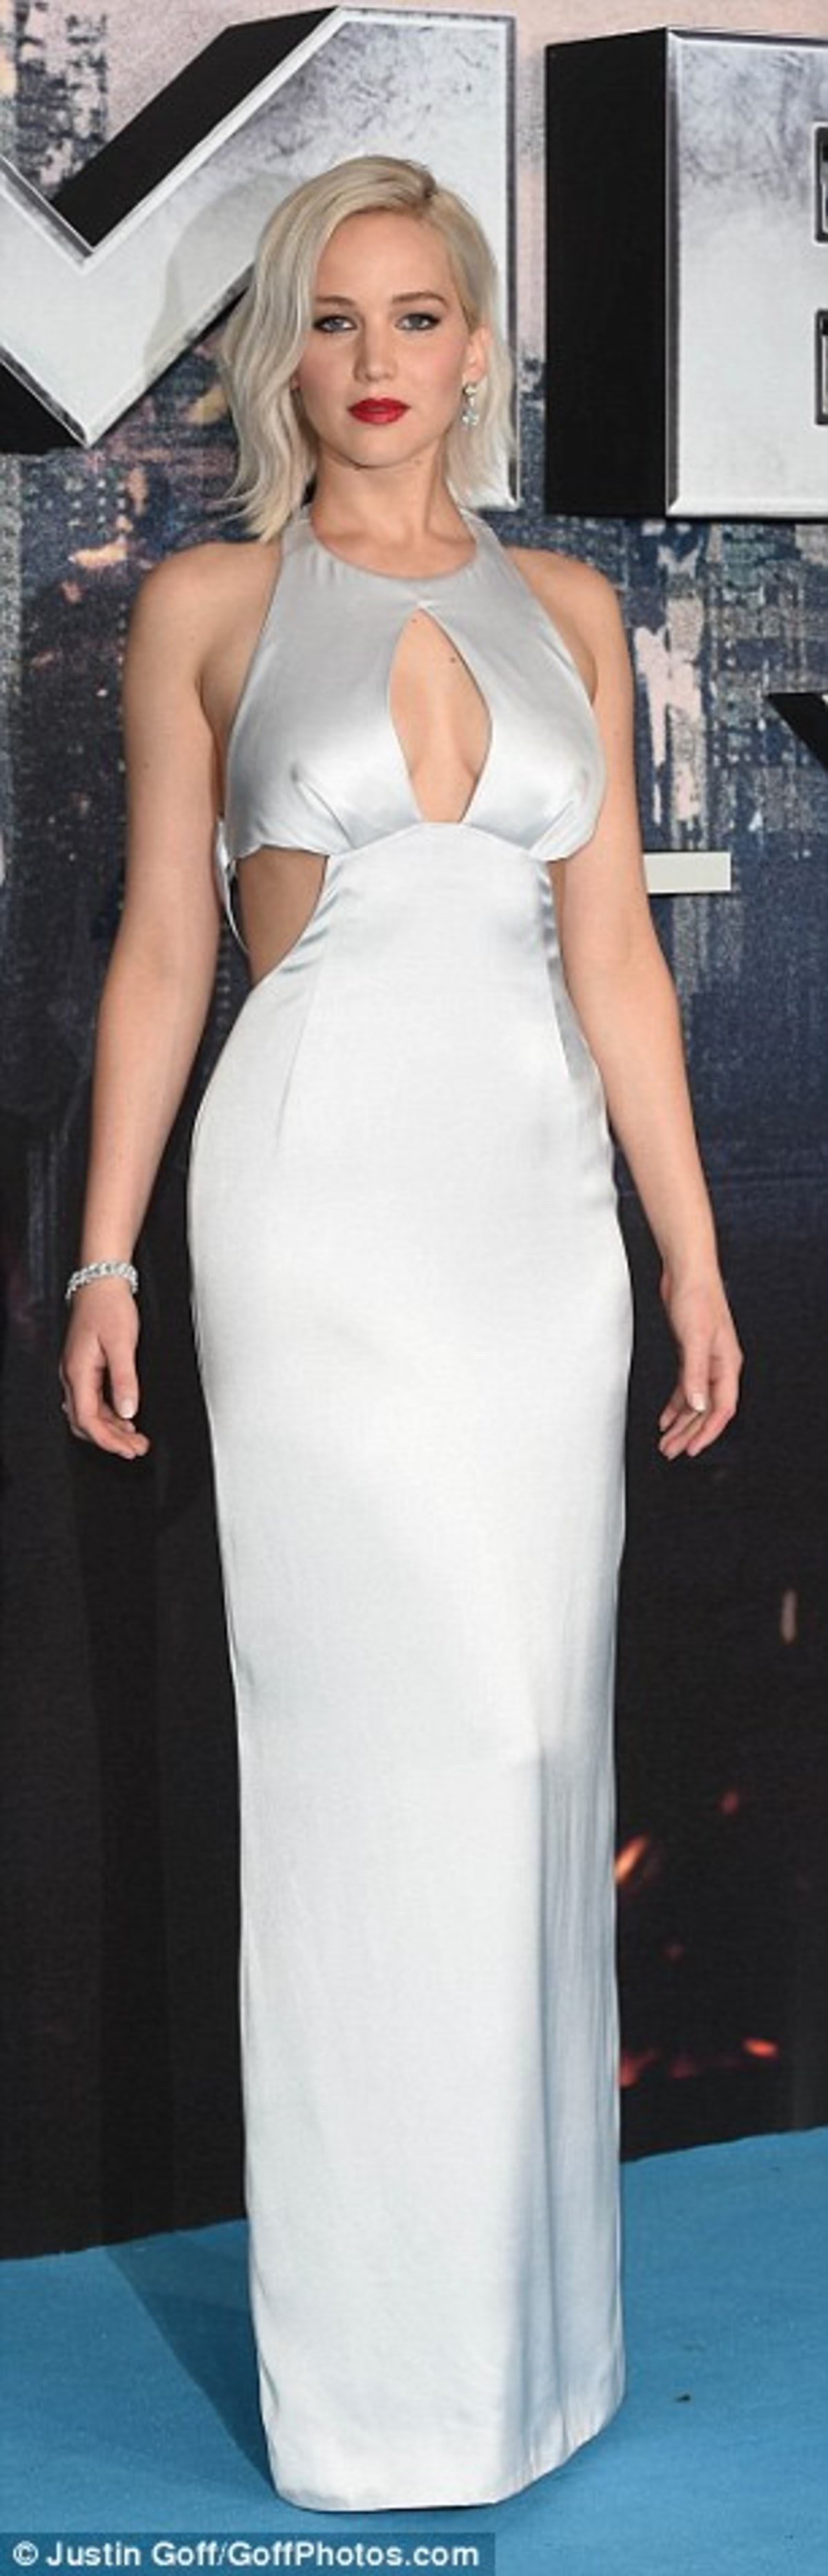 33FCB52600000578-3582175-Busty_display_Her_dress_revealed_her_ample_chest-a-91_1462872233182